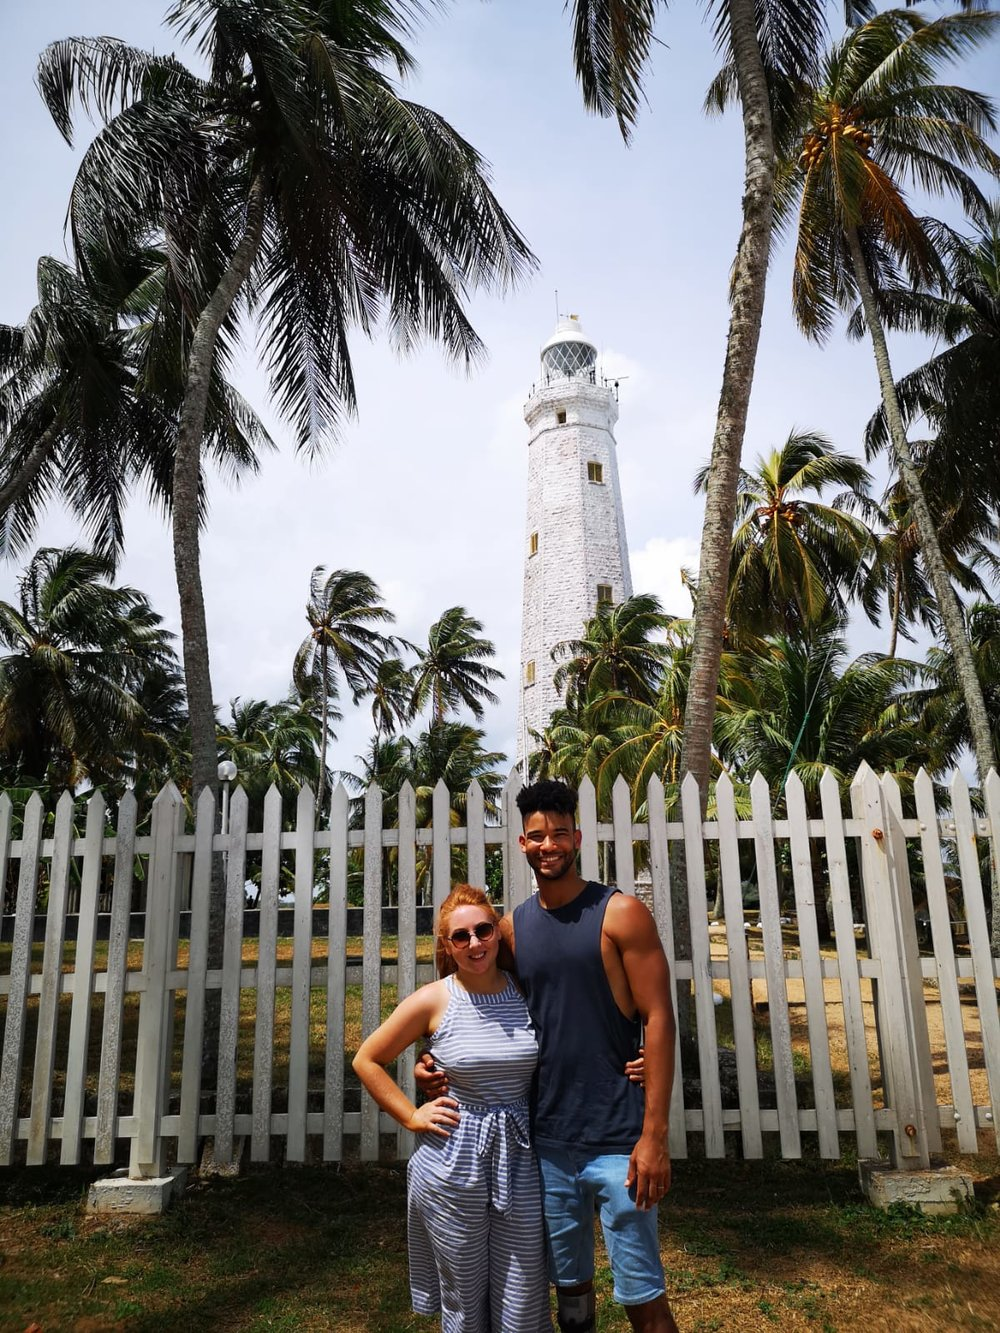 invite-to-paradise-sri-lanka-holiday-honeymoon-specialists-customer-feedback-elin-jordan-luce-galle-lighthouse.JPG